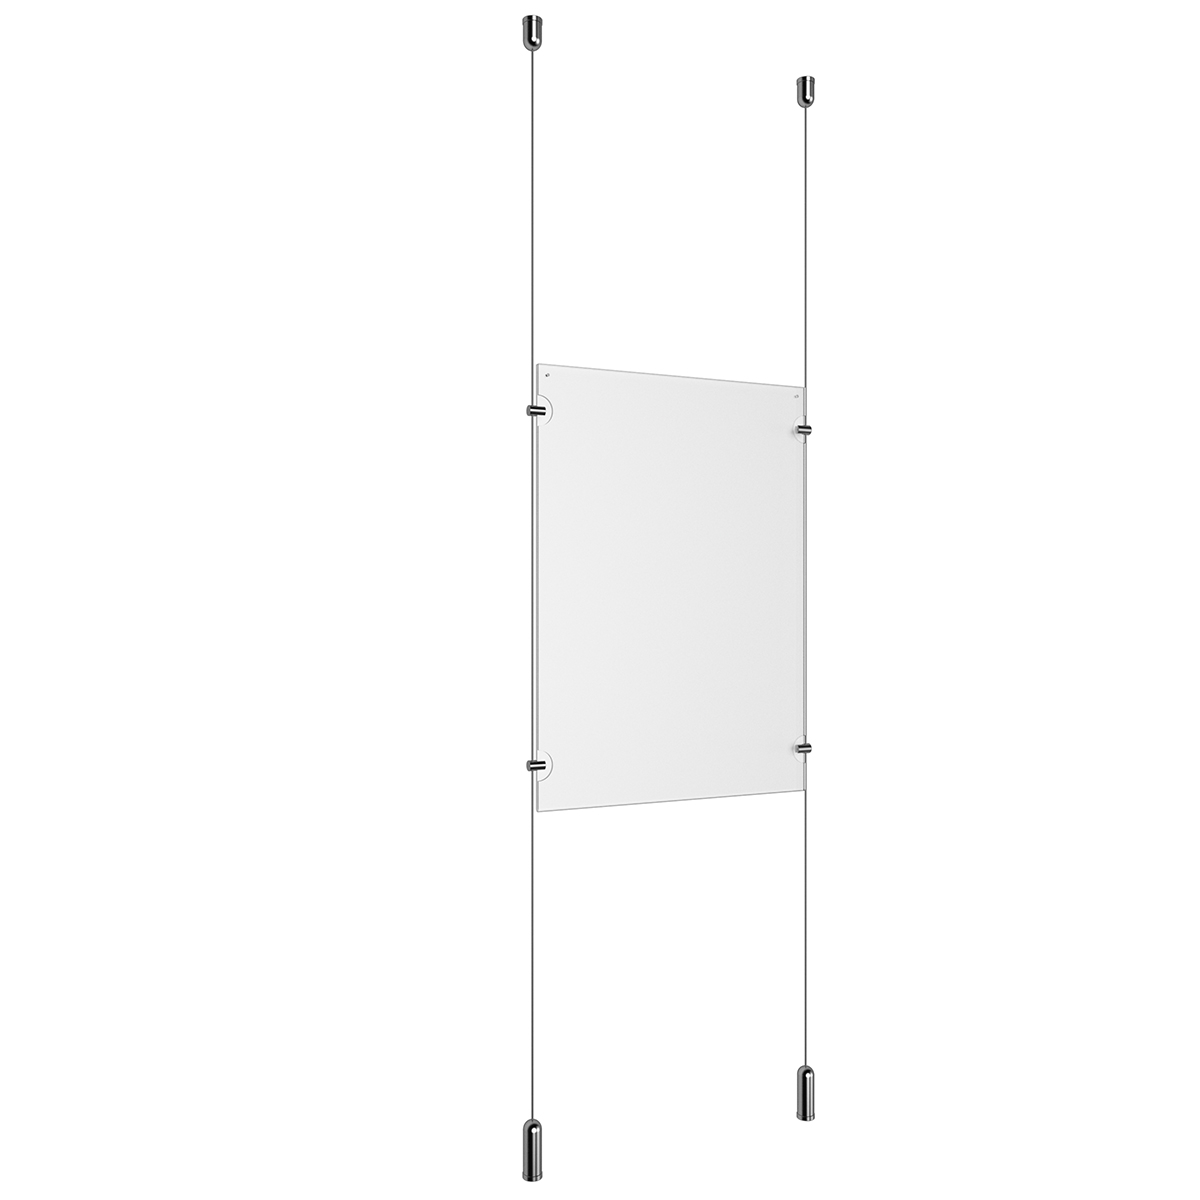 (1) 11'' Width x 17'' Height Clear Acrylic Frame & (2) Ceiling-to-Floor Aluminum Clear Anodized Cable Systems with (4) Single-Sided Panel Grippers